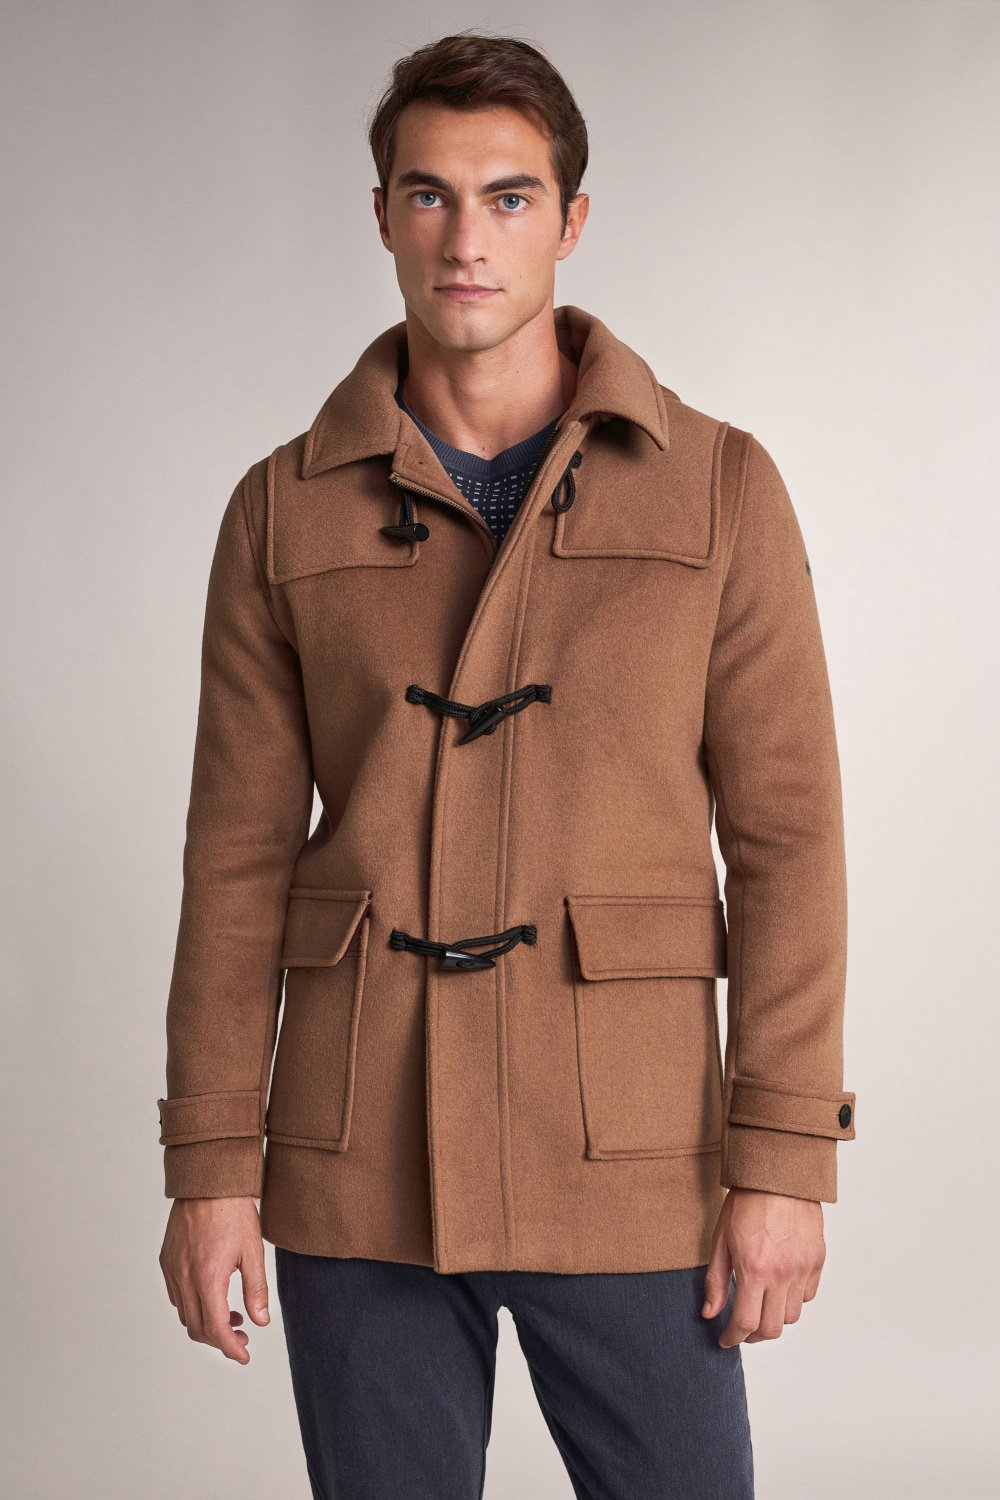 Long farming coat with toggles - Salsa